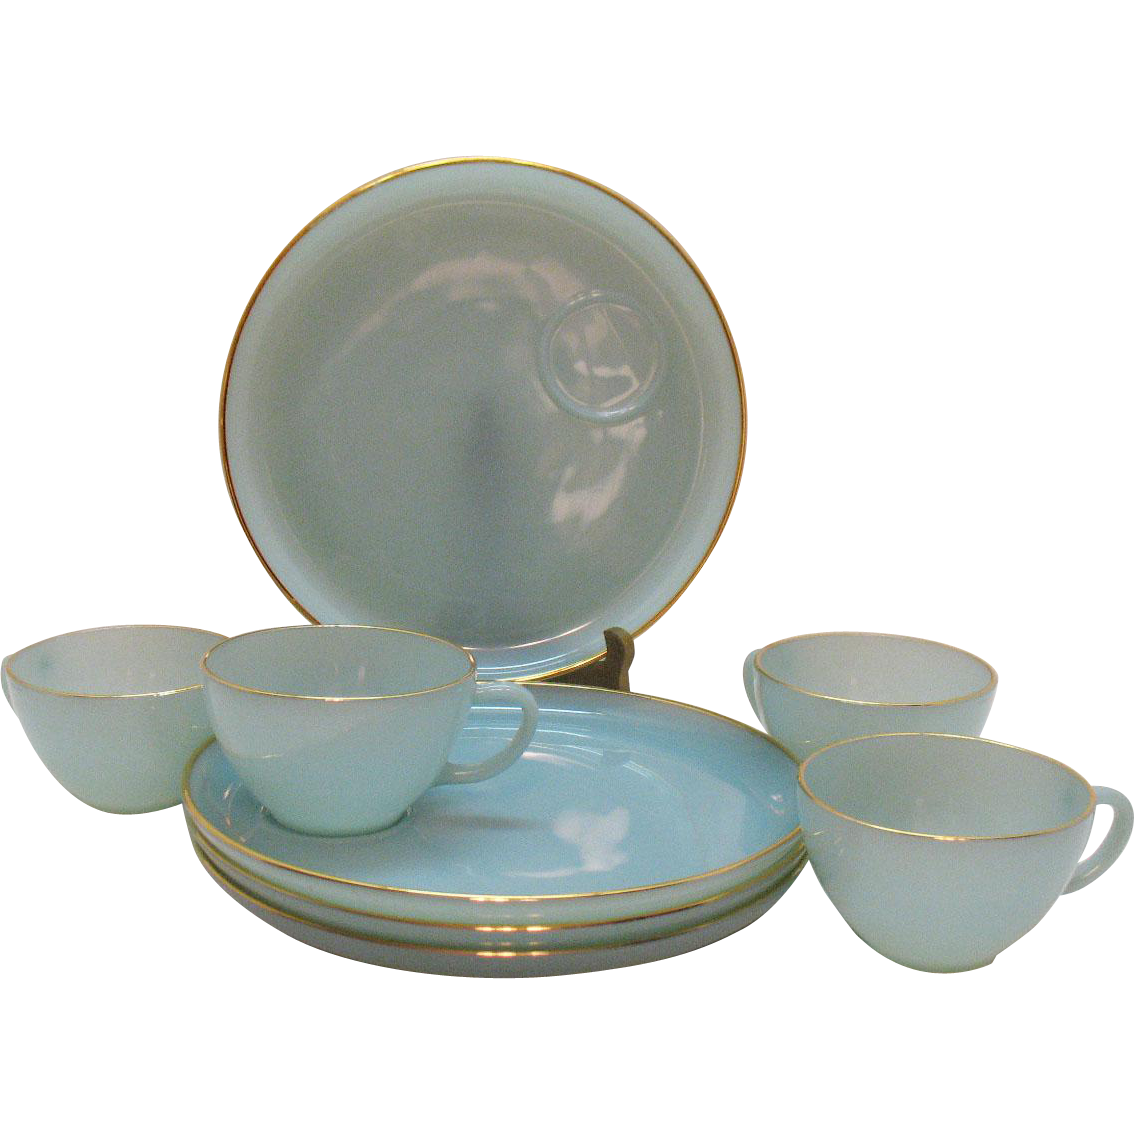 Vintage Anchor Hocking Fire King 4 Snack Sets Turquoise Blue 1957-58 Good Condition